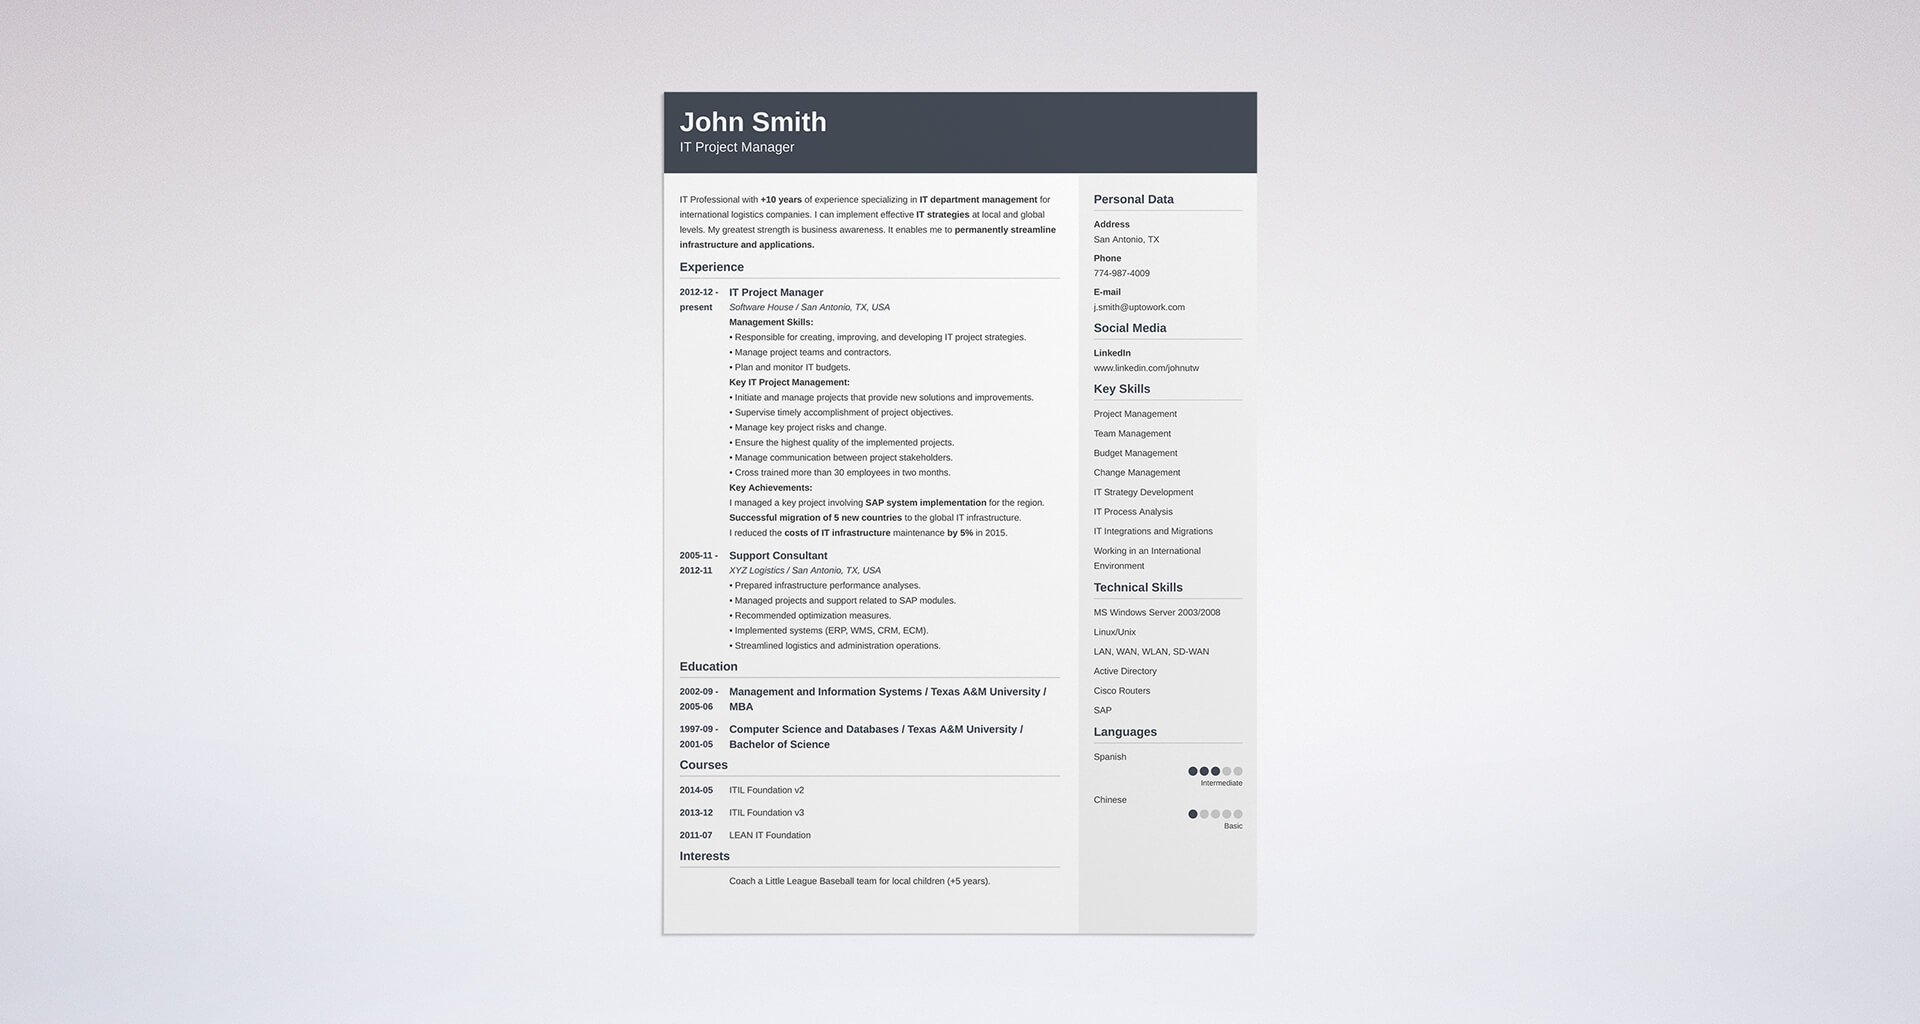 resume formats pick the best one in  steps (examples  templates) -